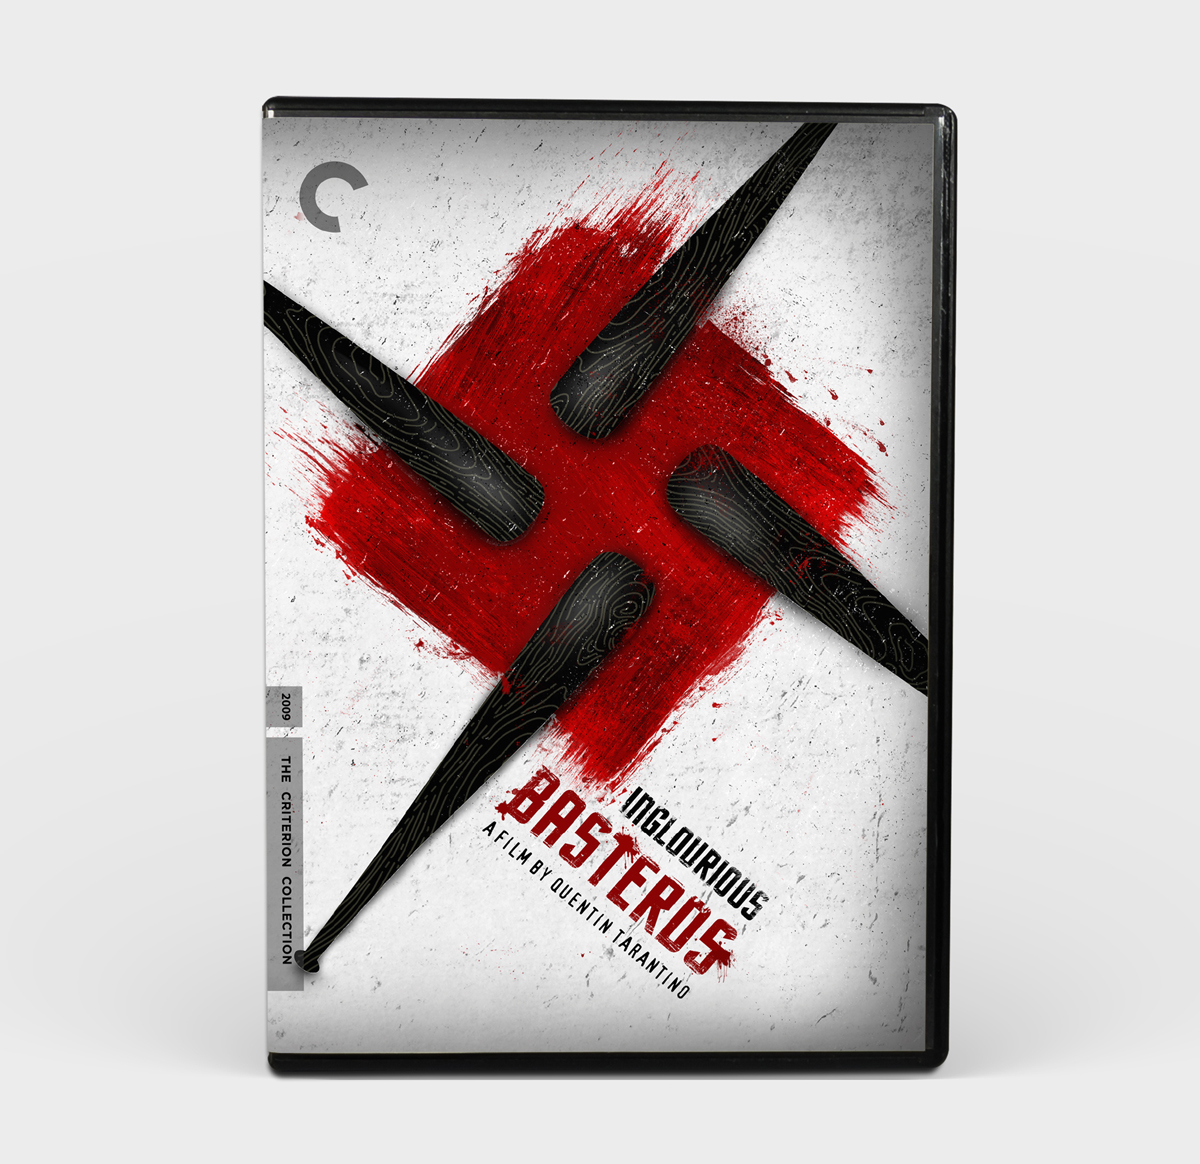 Criterion-Covers-inglourious-basterds-front-Thanh-Nguyen-design